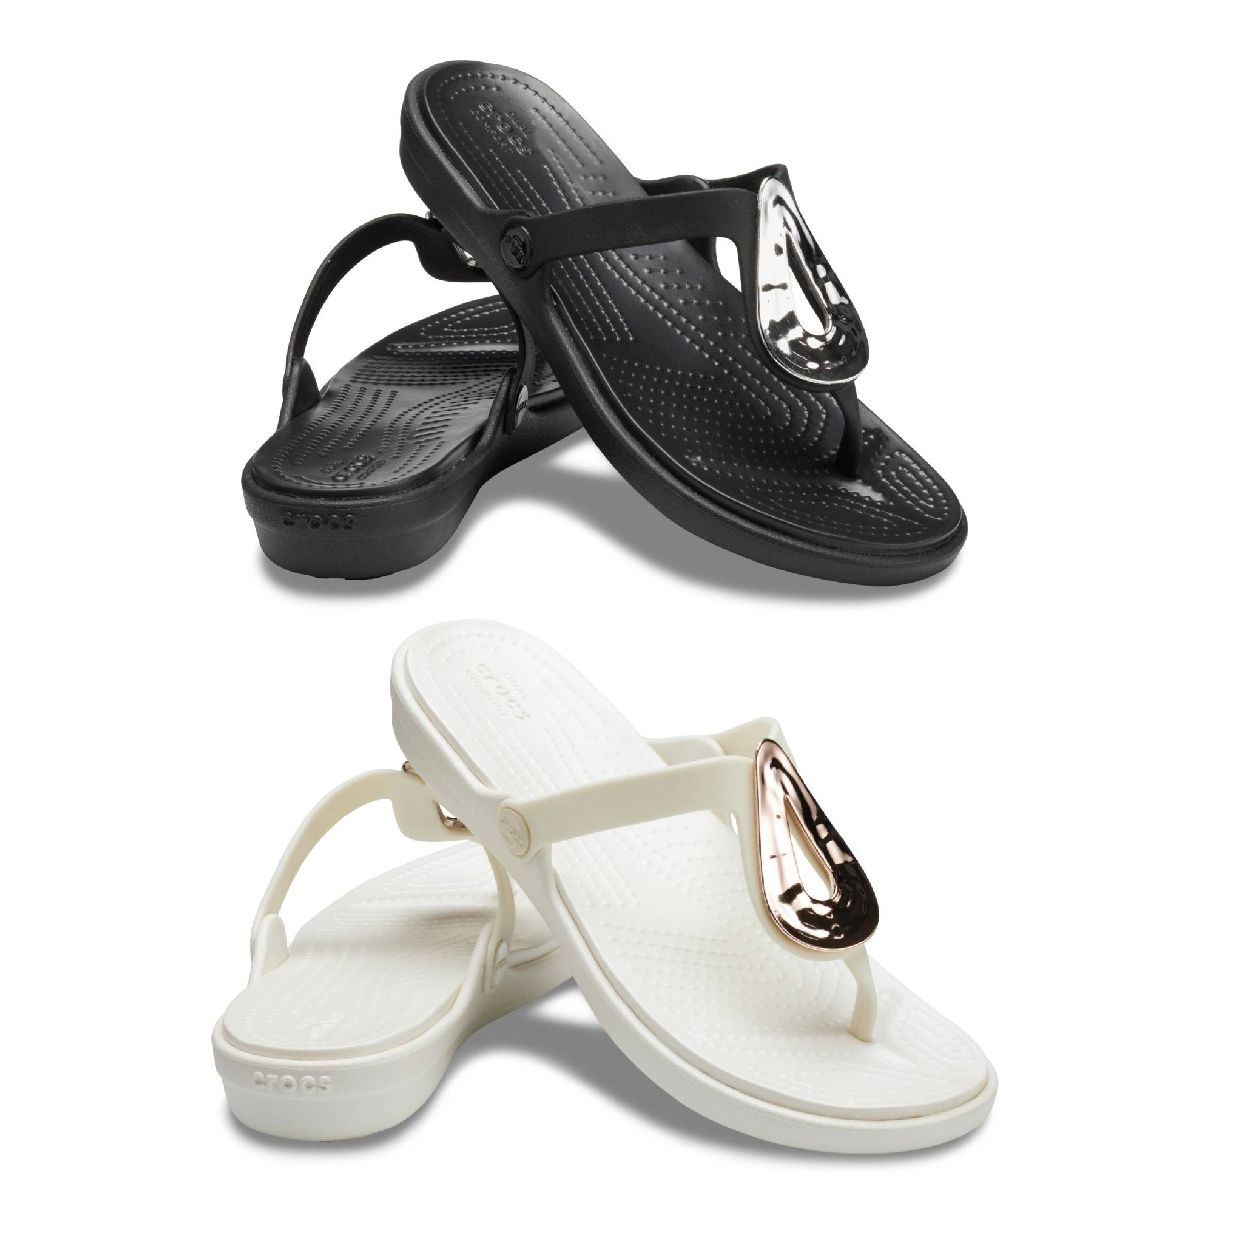 Crocs Sanrah Liquid Metallic Flip W Sandalen Ballerinas Synthetik Damen FS19